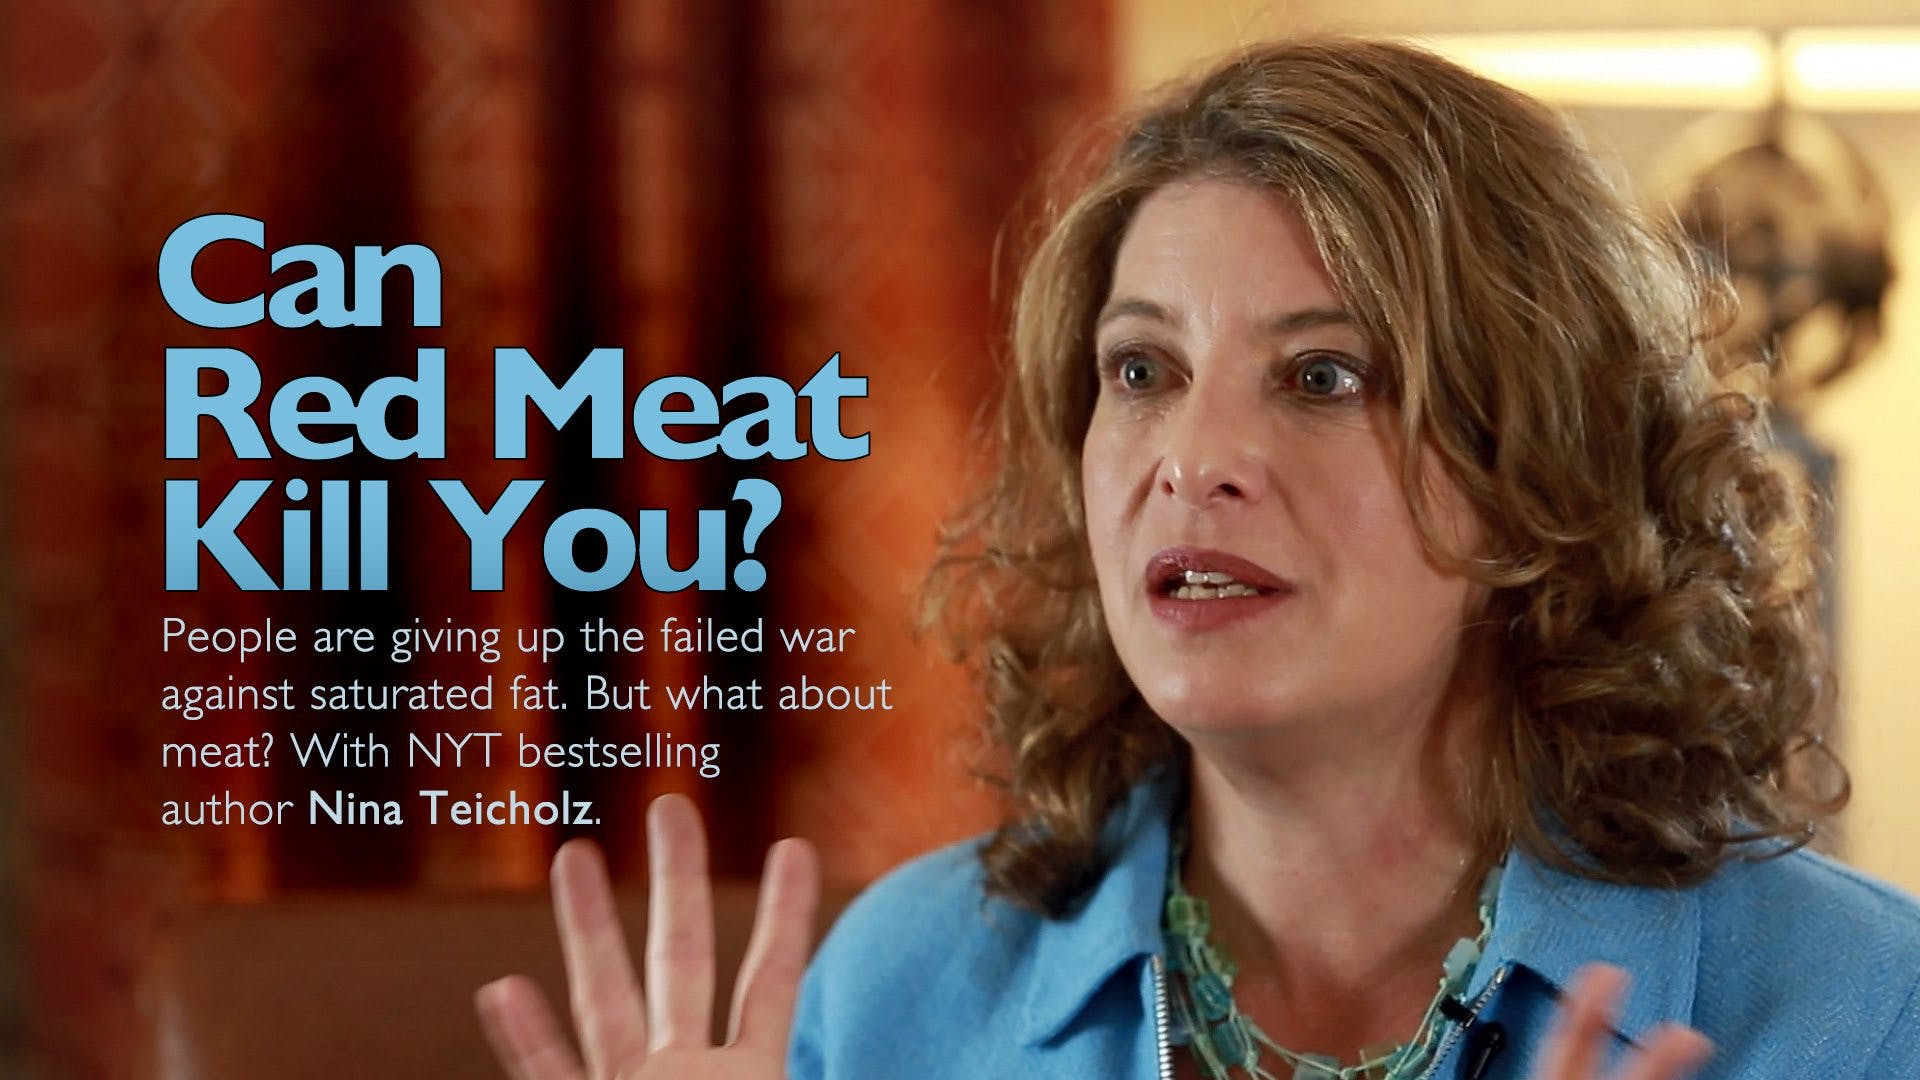 Can Red Meat Kill You? – Nina Teicholz